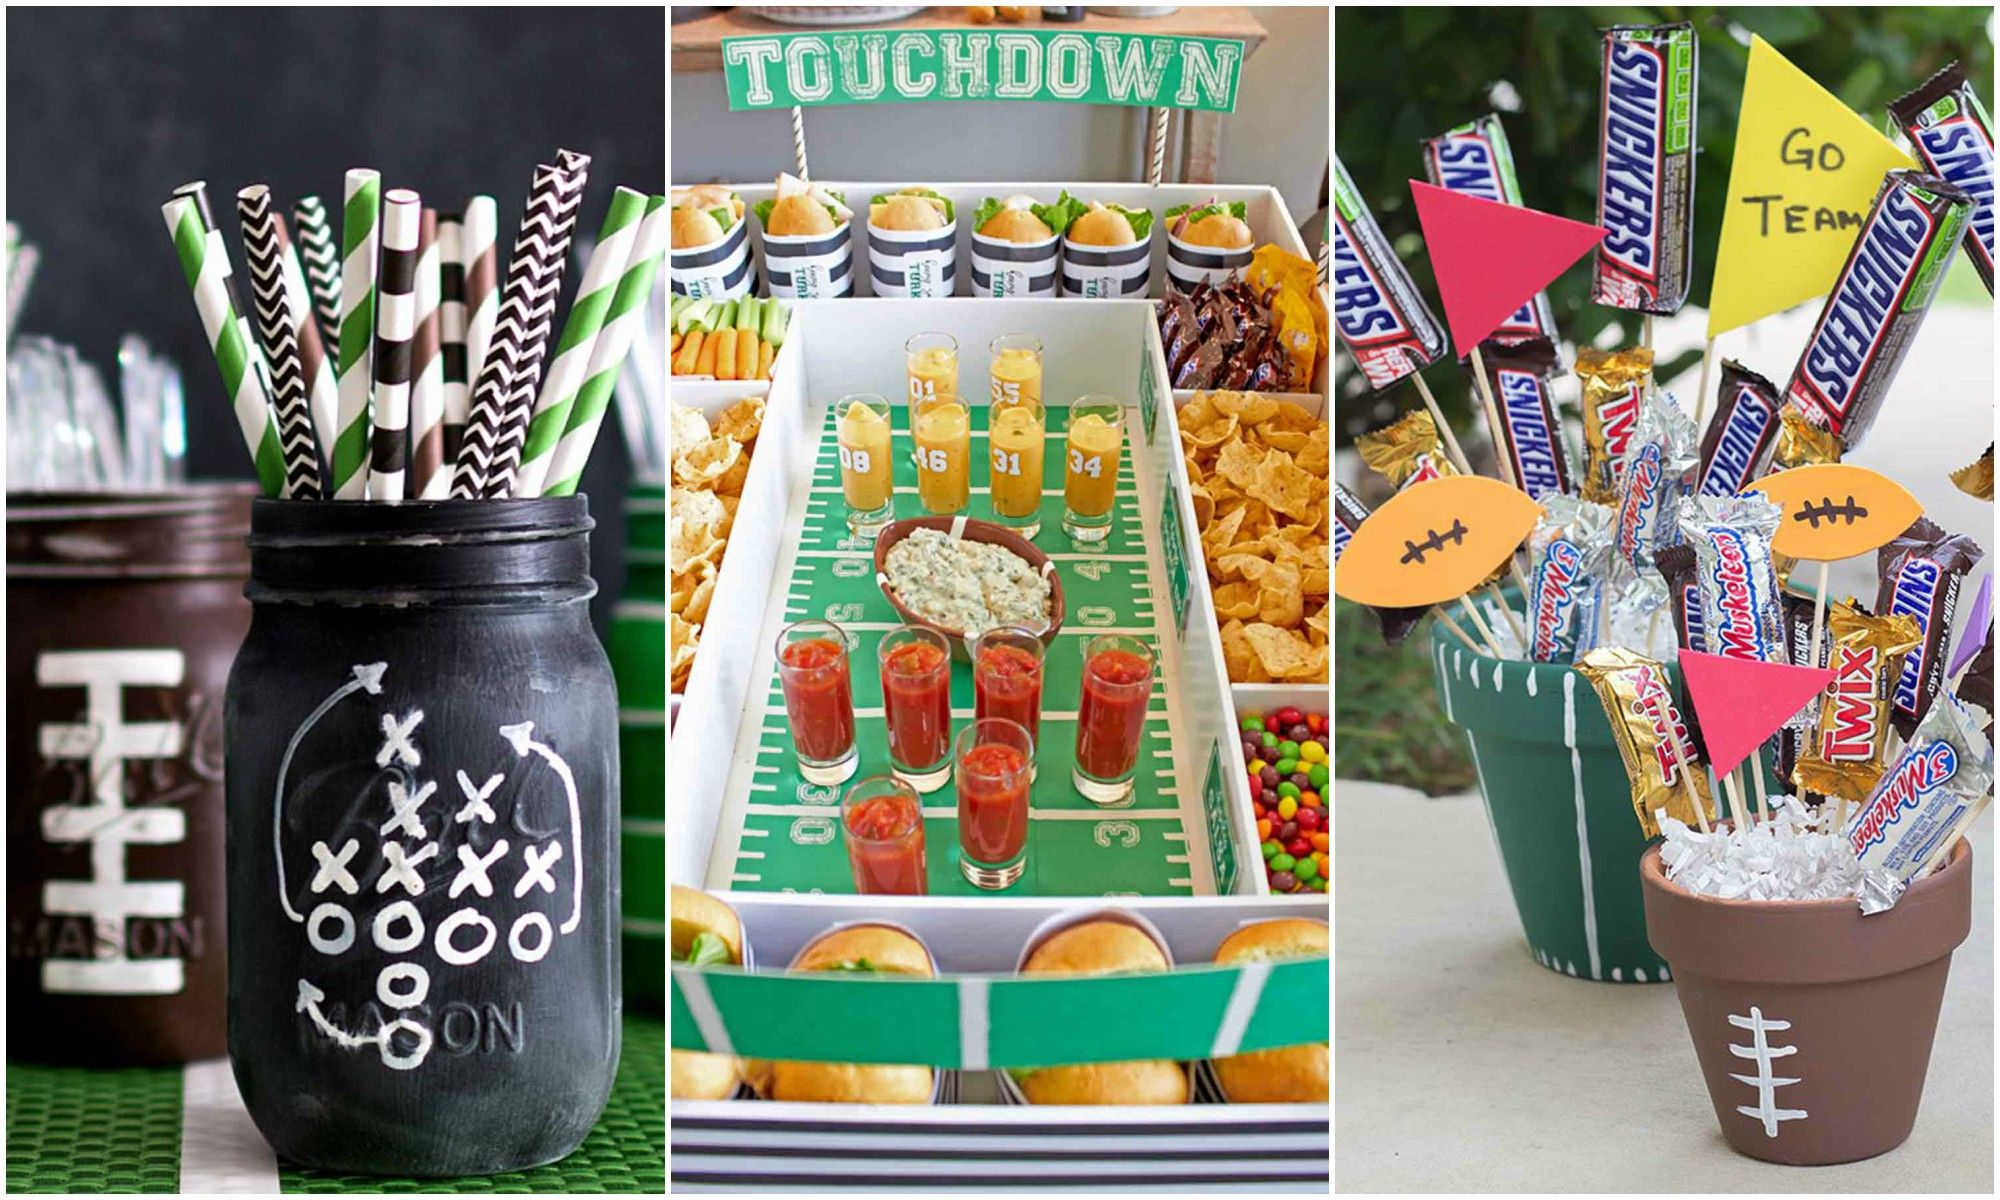 open football c party and a cutouts game birthday canada day index shop decor lg supplies decorations